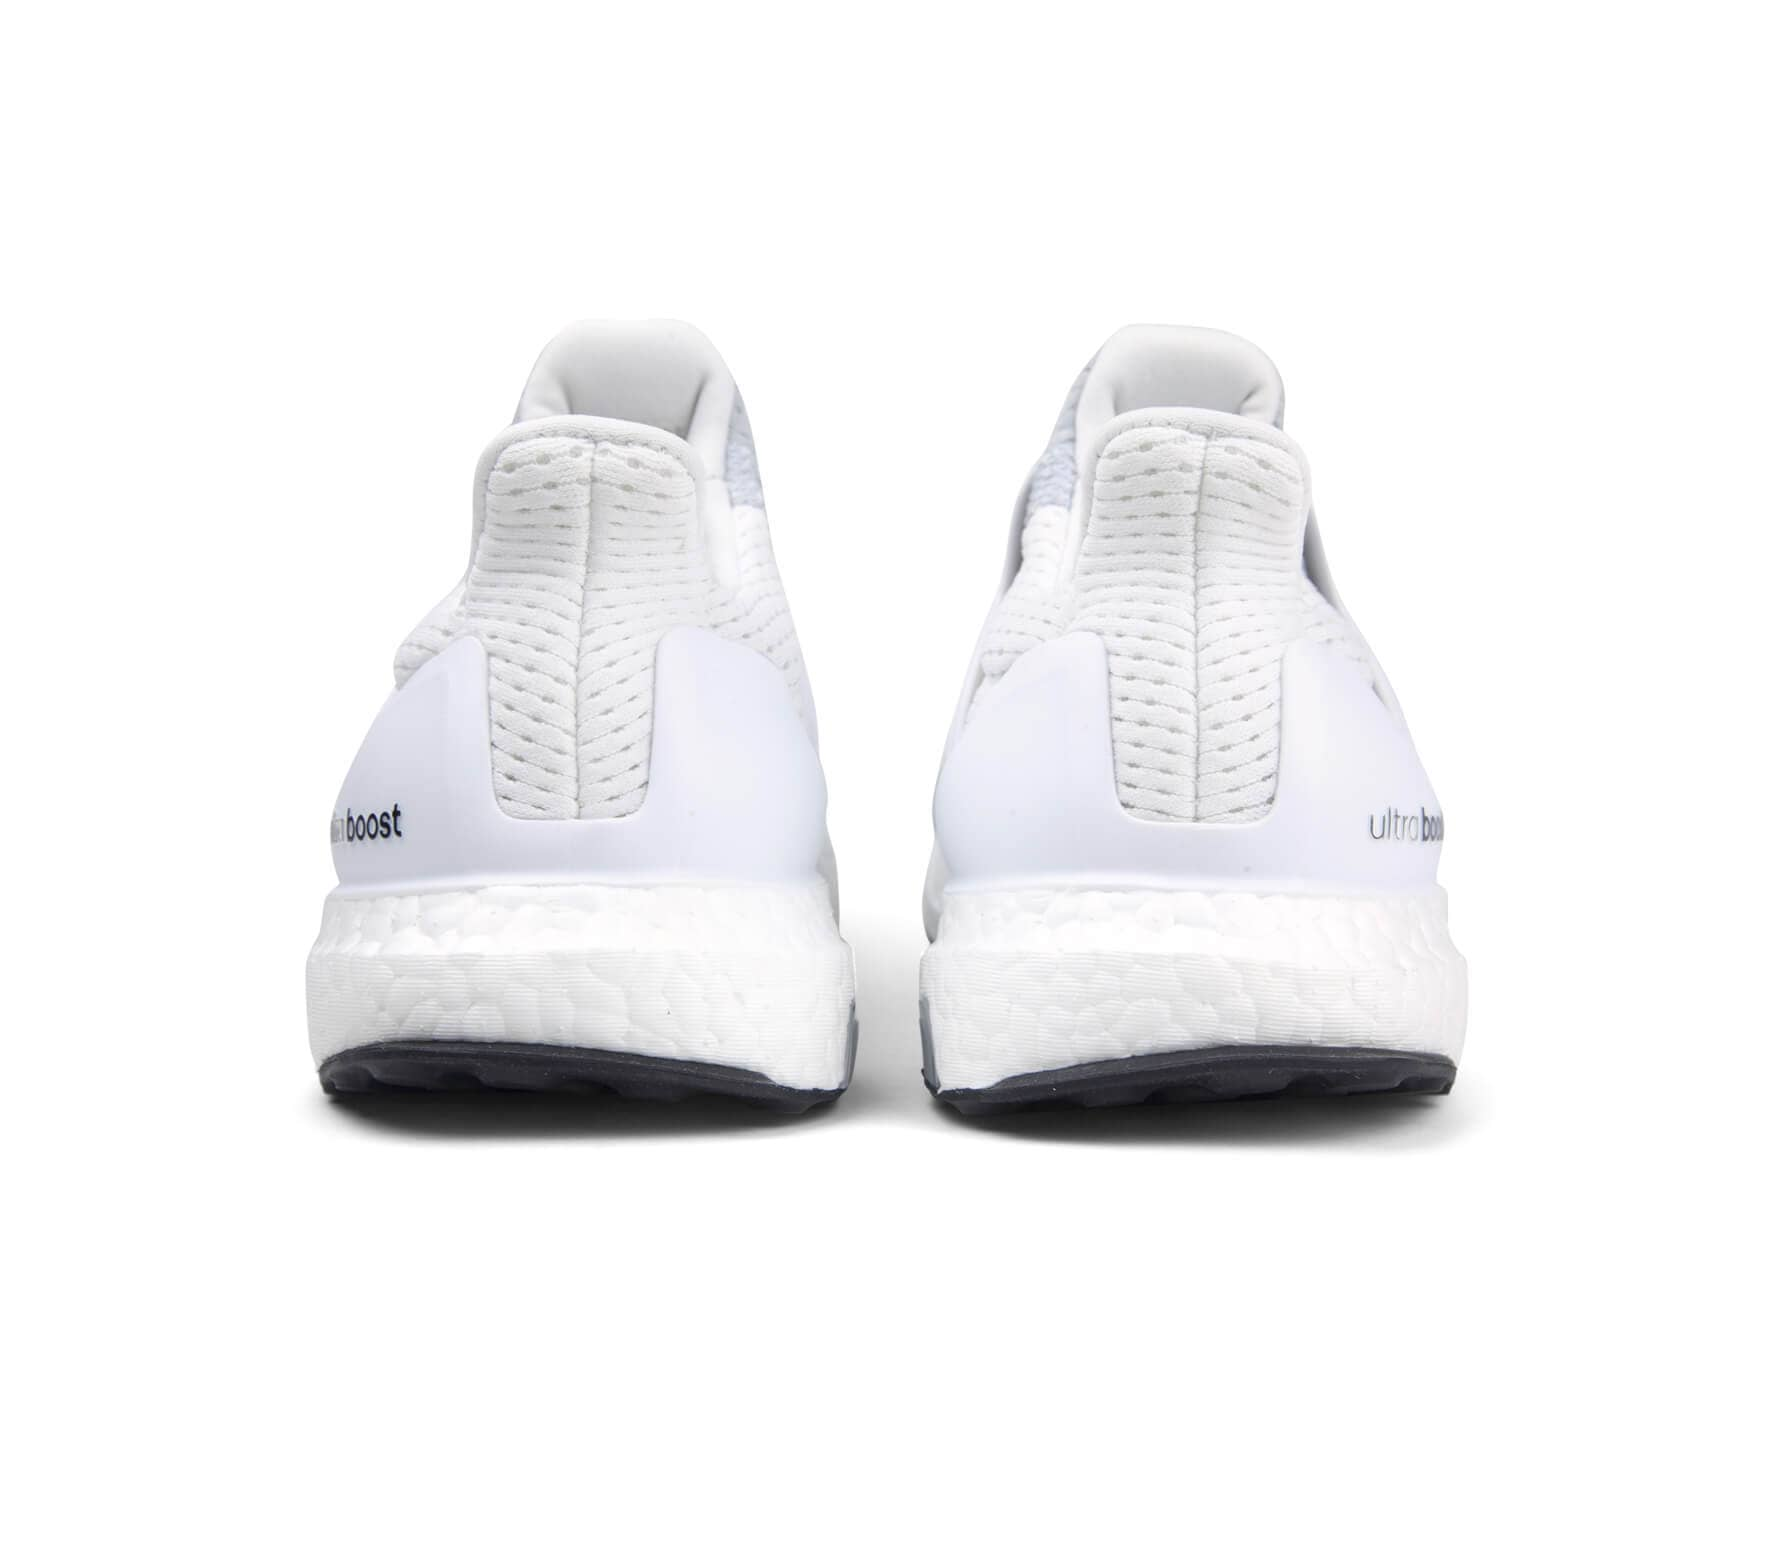 ad4b0d6ddc34 Adidas - Ultra Boost women s running shoes (white black) - buy it at ...